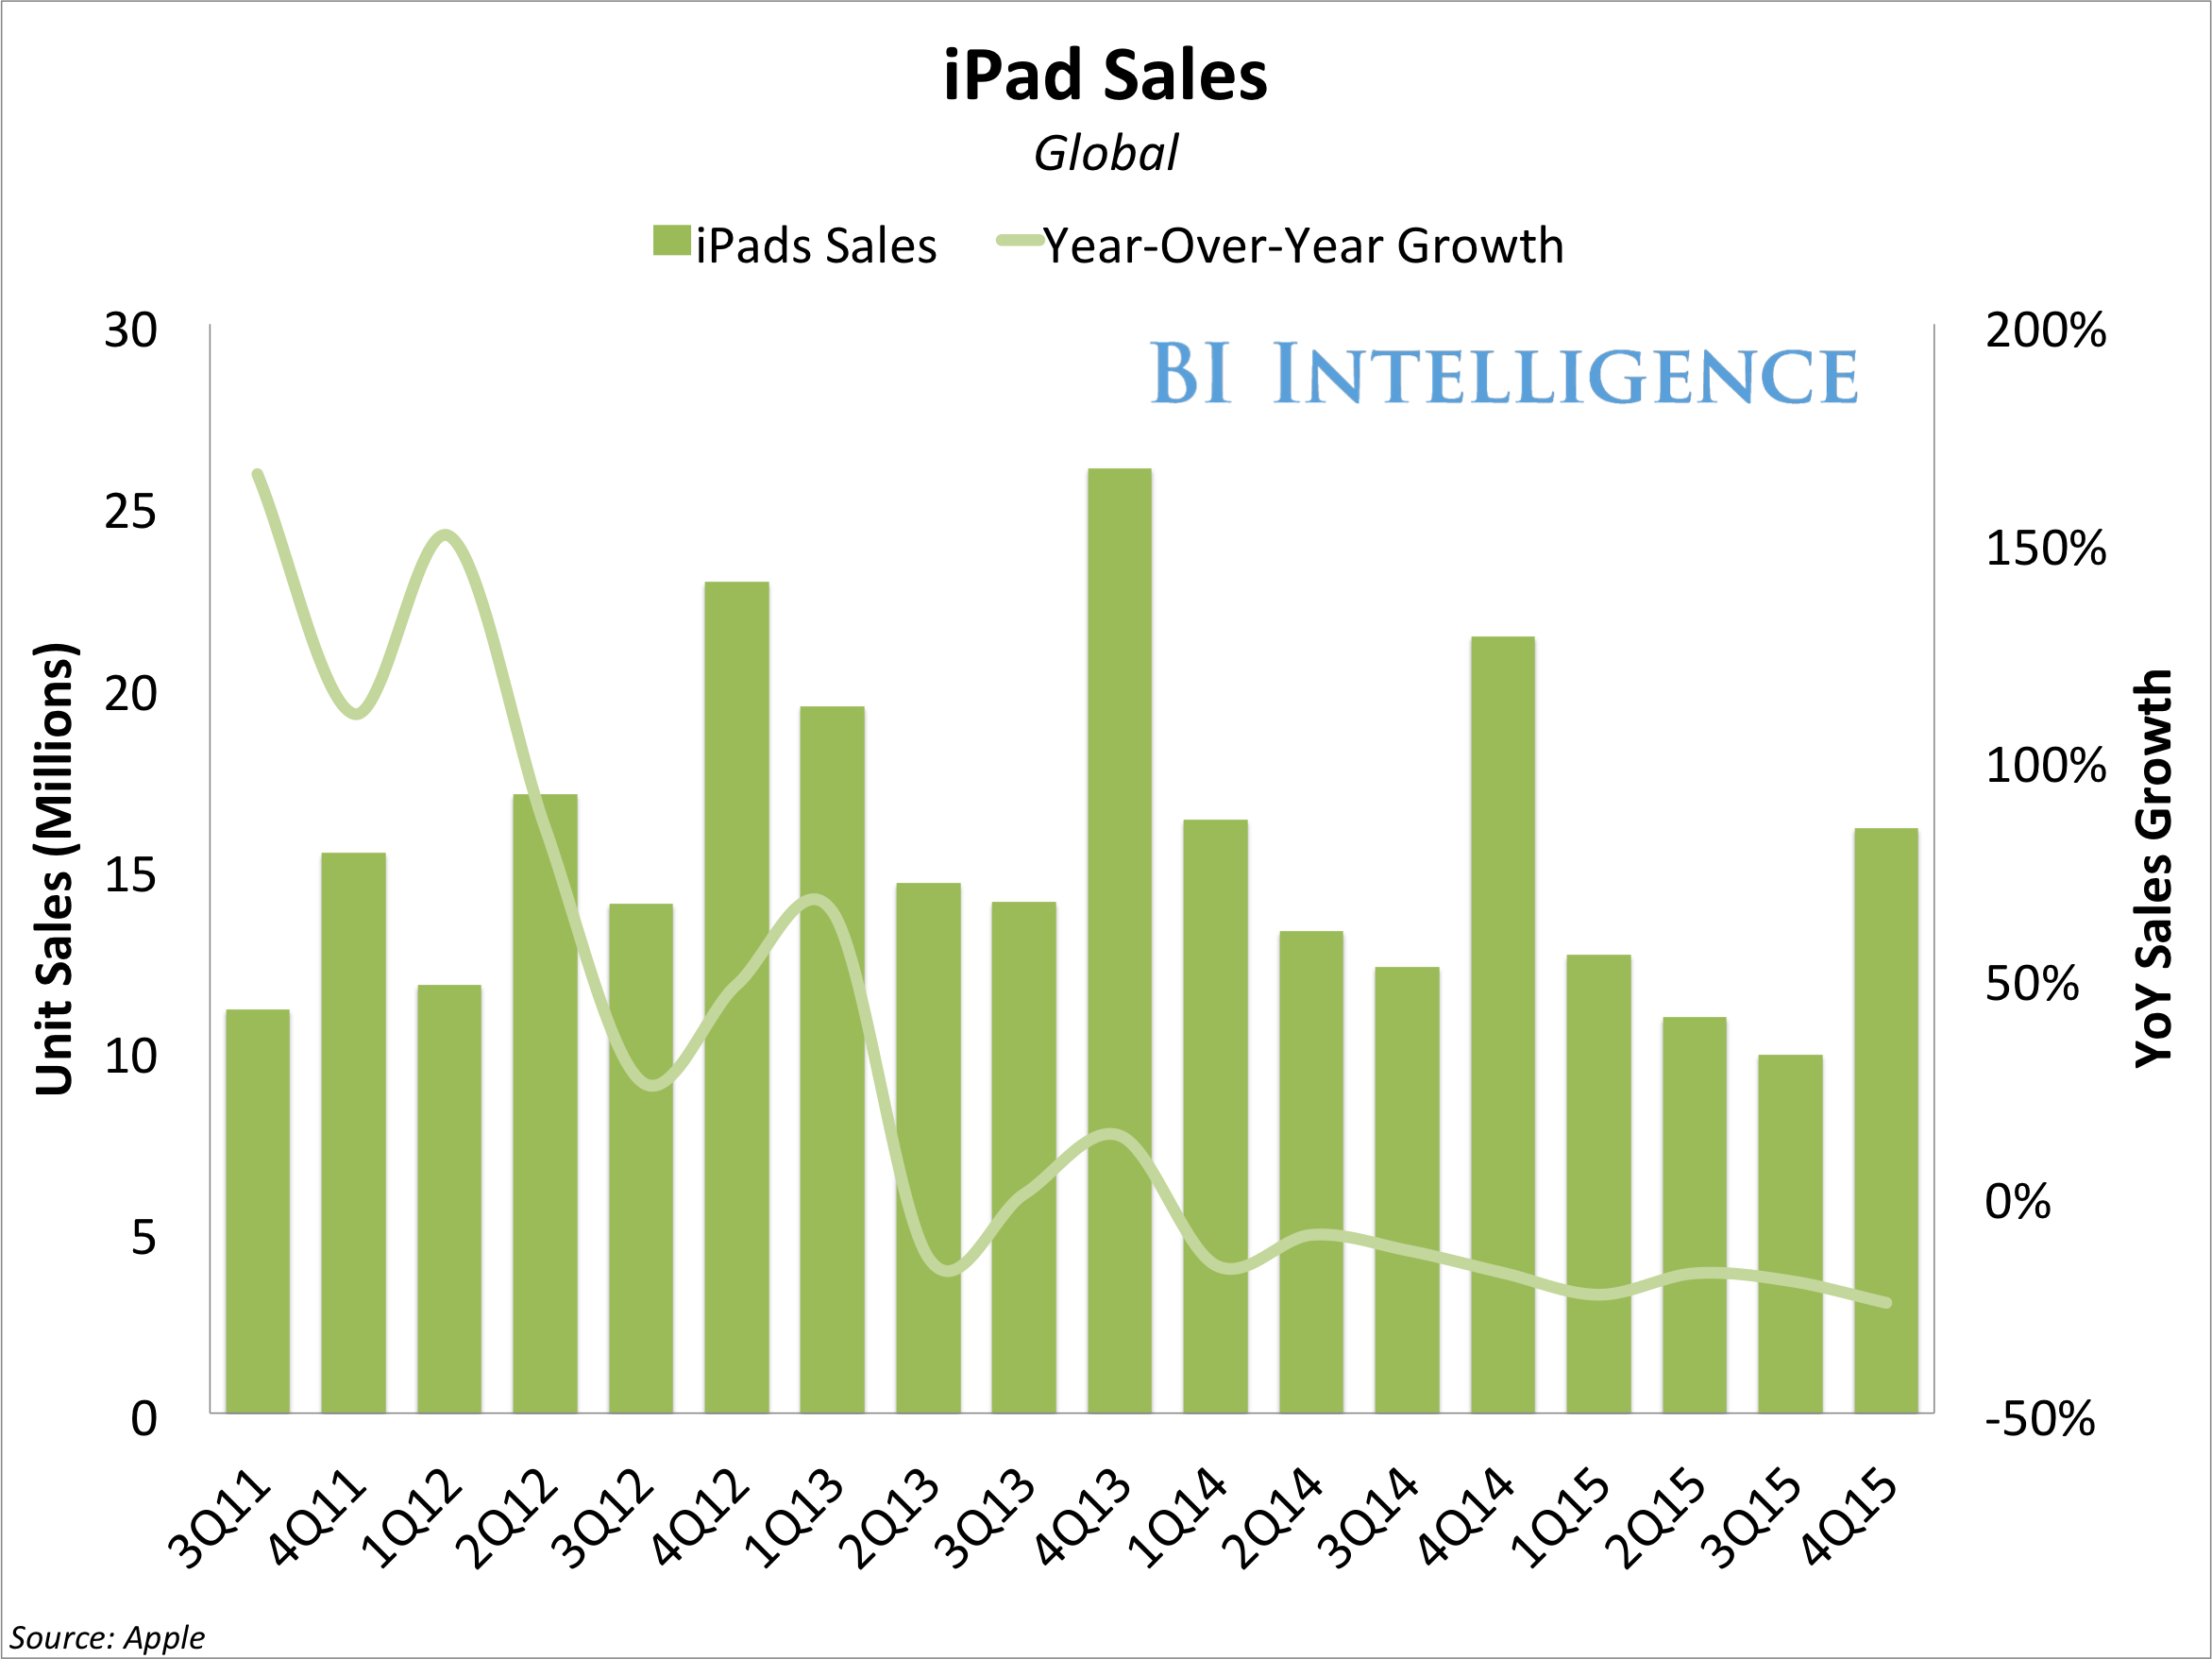 bii apple ipad unit sales yoy growth